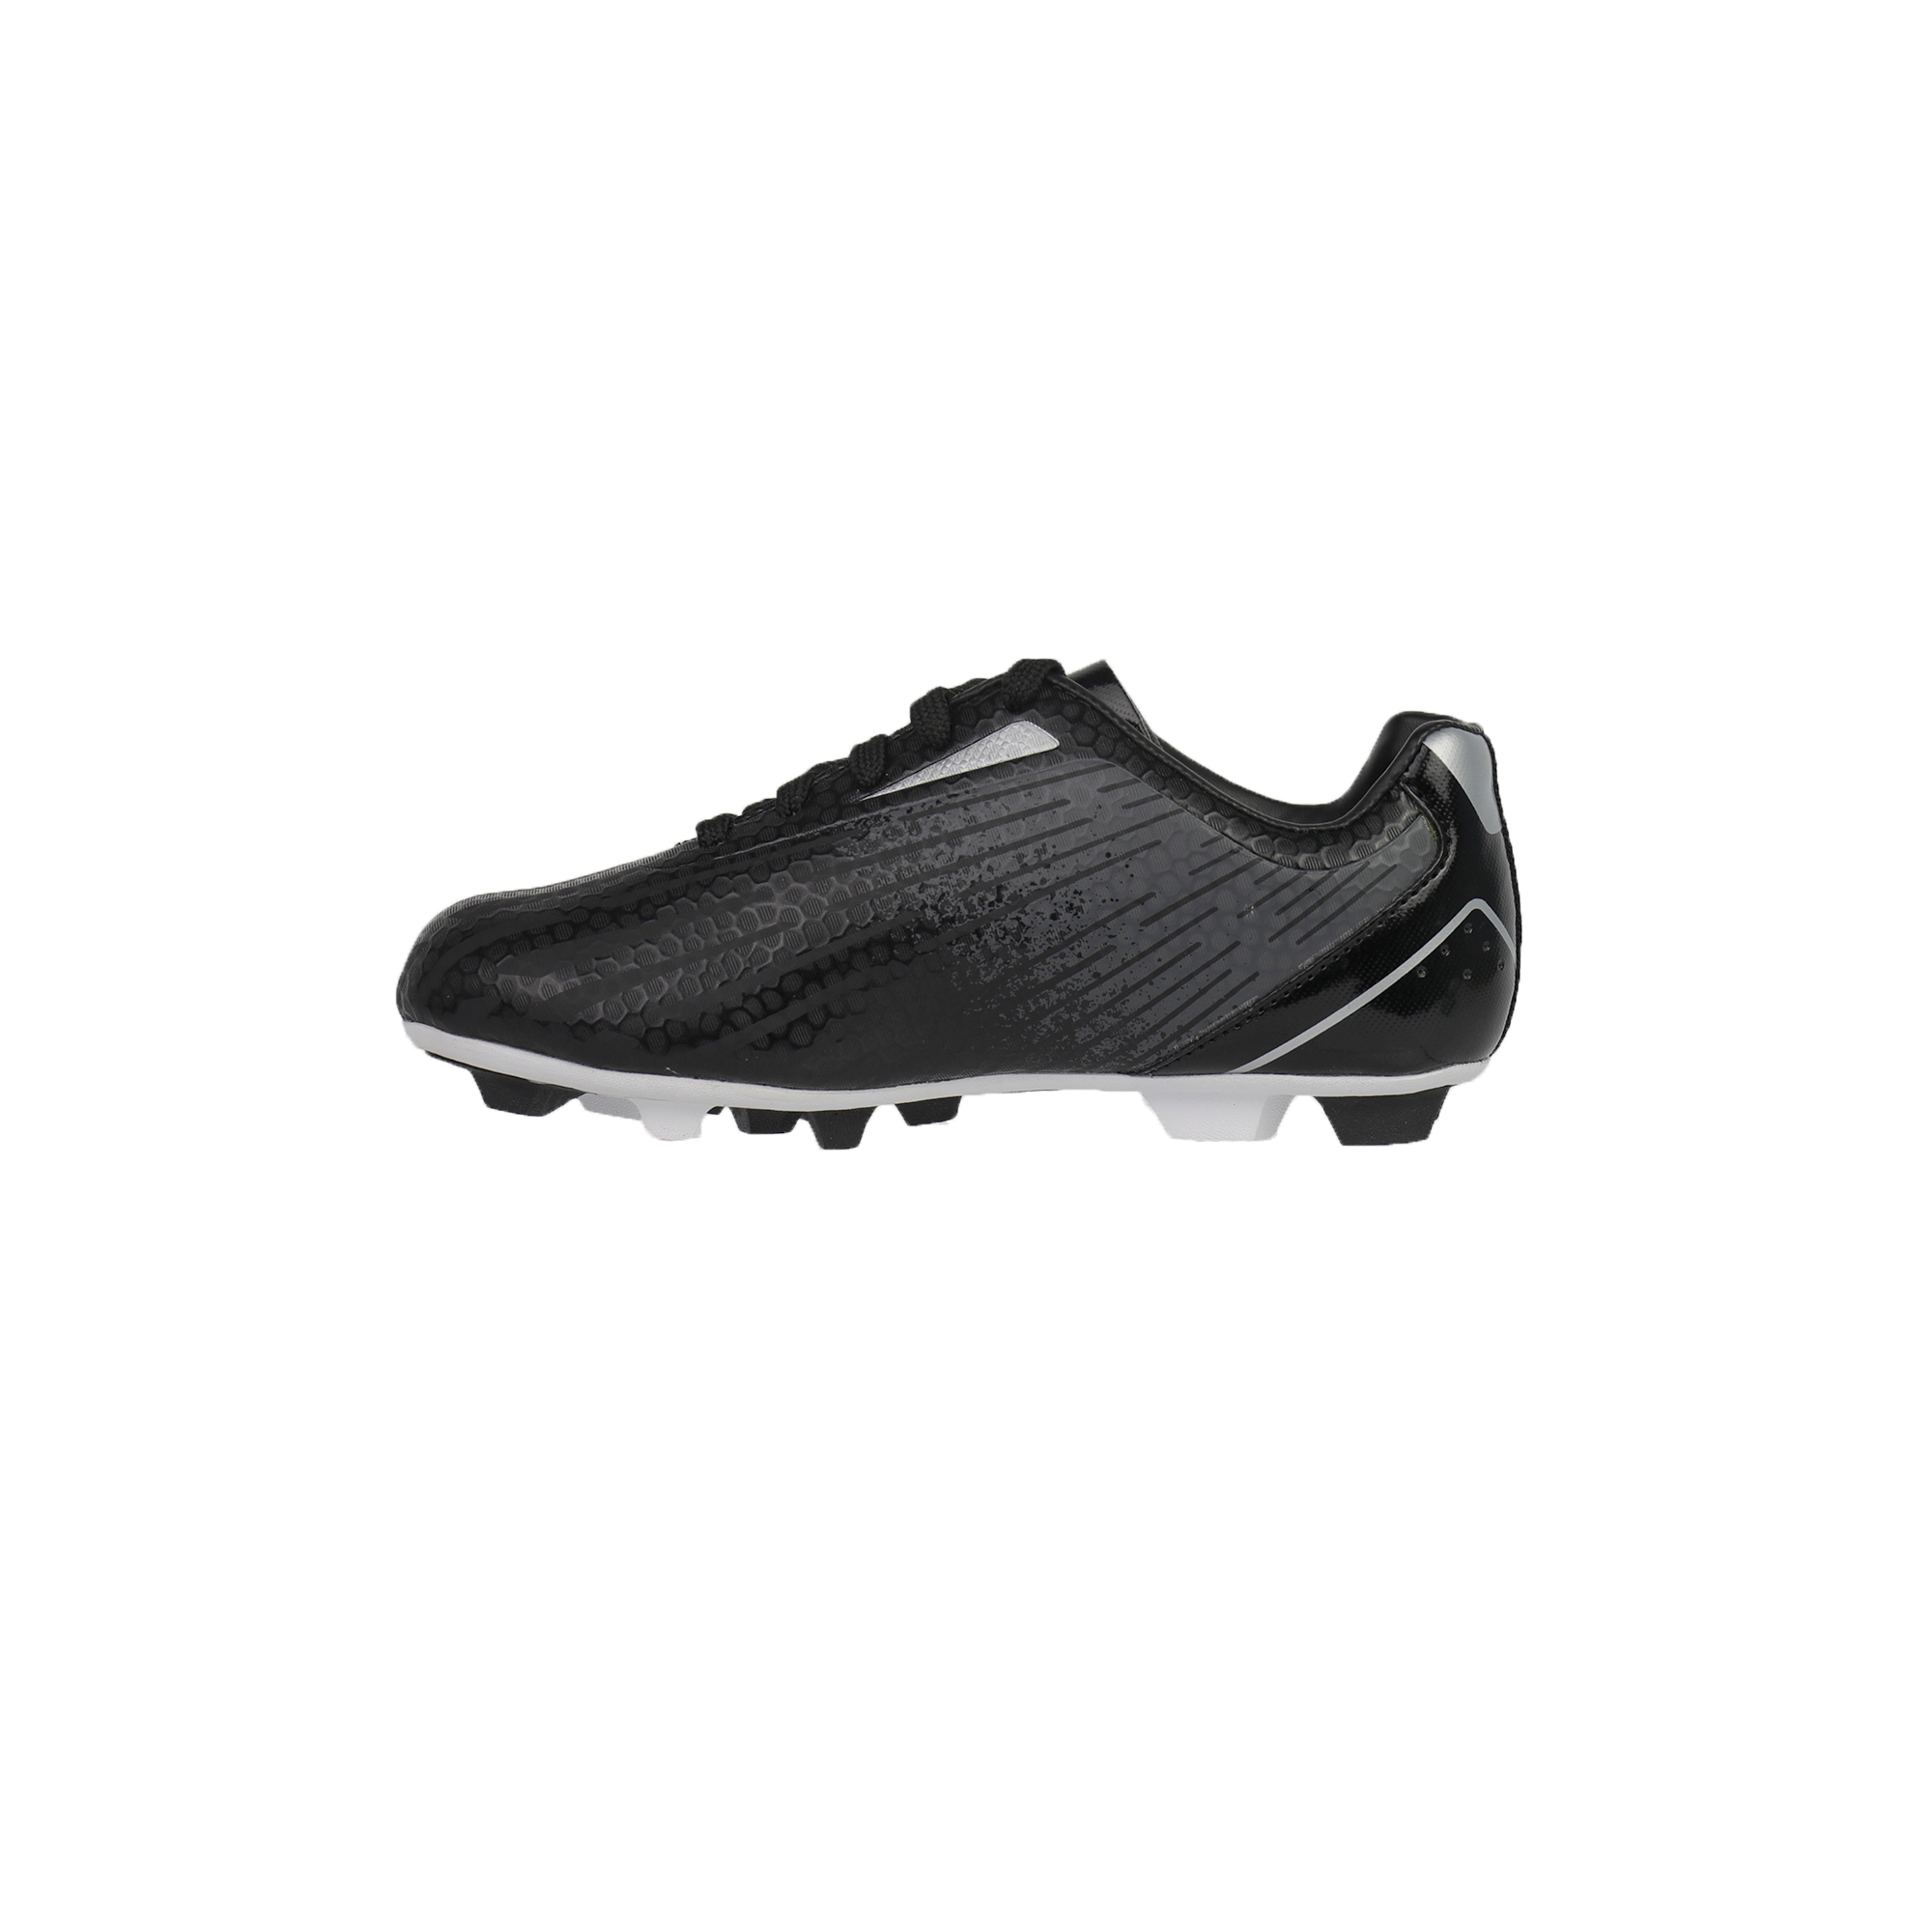 Byb Athletic Works Color Change Cleats Youth Soccer Kids Big Boys Size 5 6